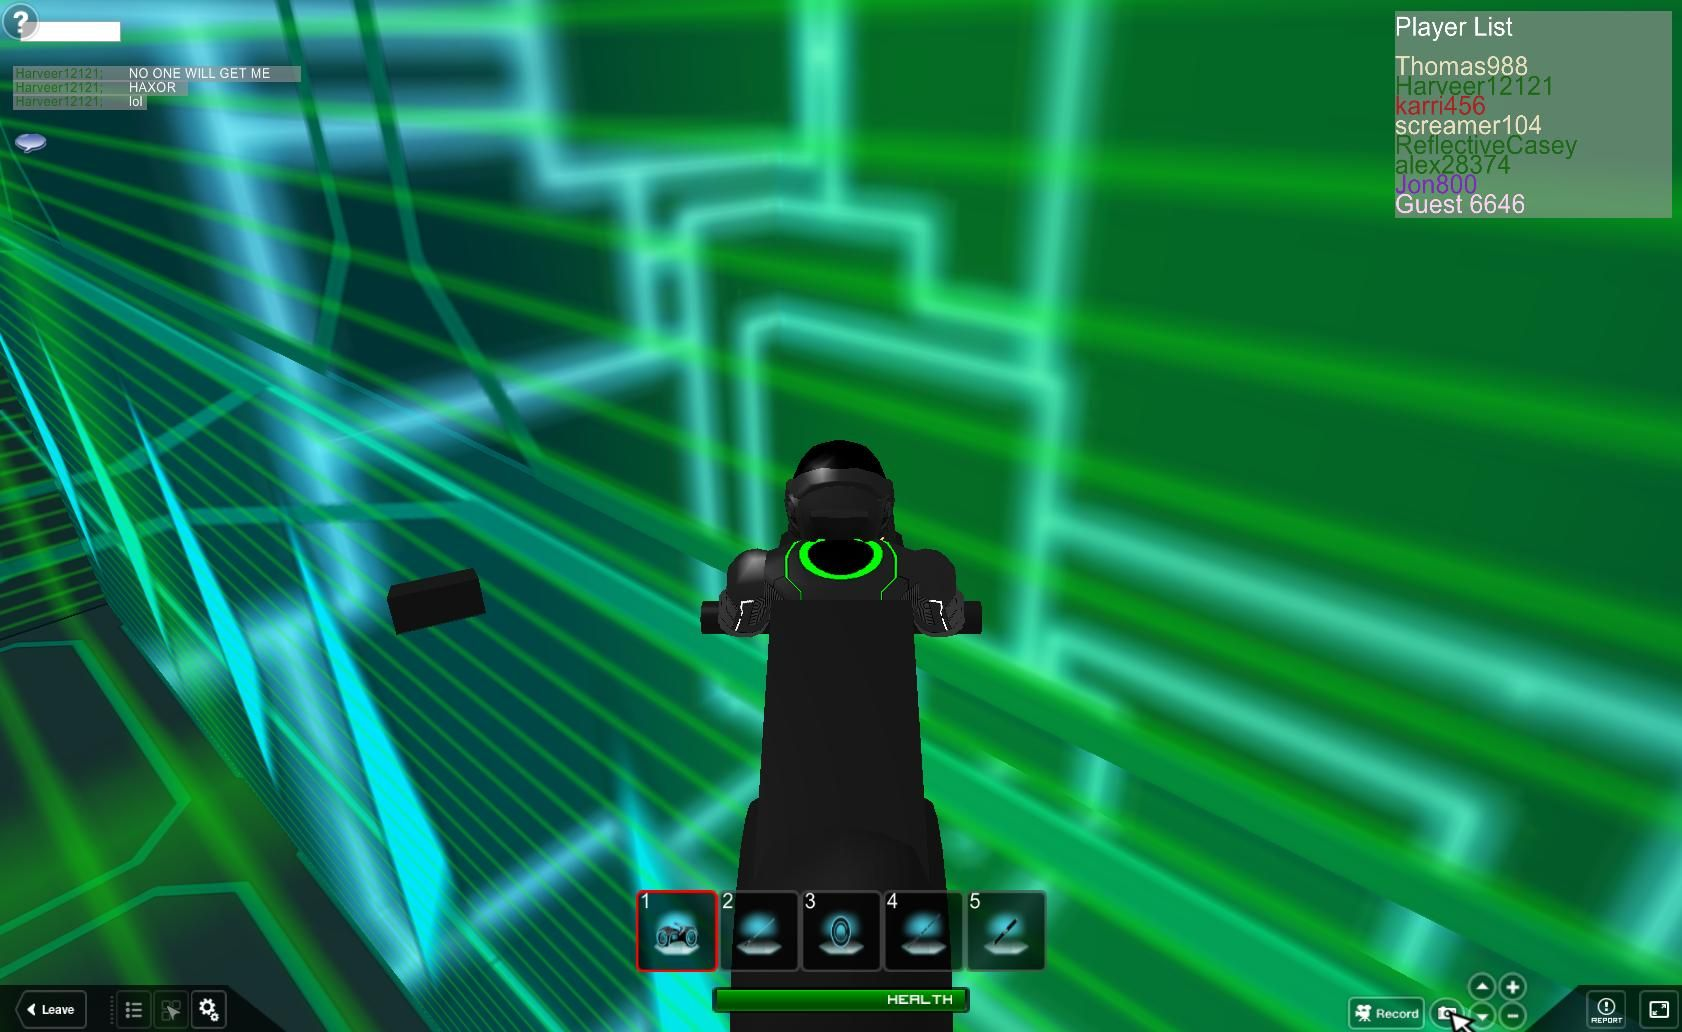 Roblox Using Video To Report Tron Legacy In Roblox Roblox Tron Legacy Tron